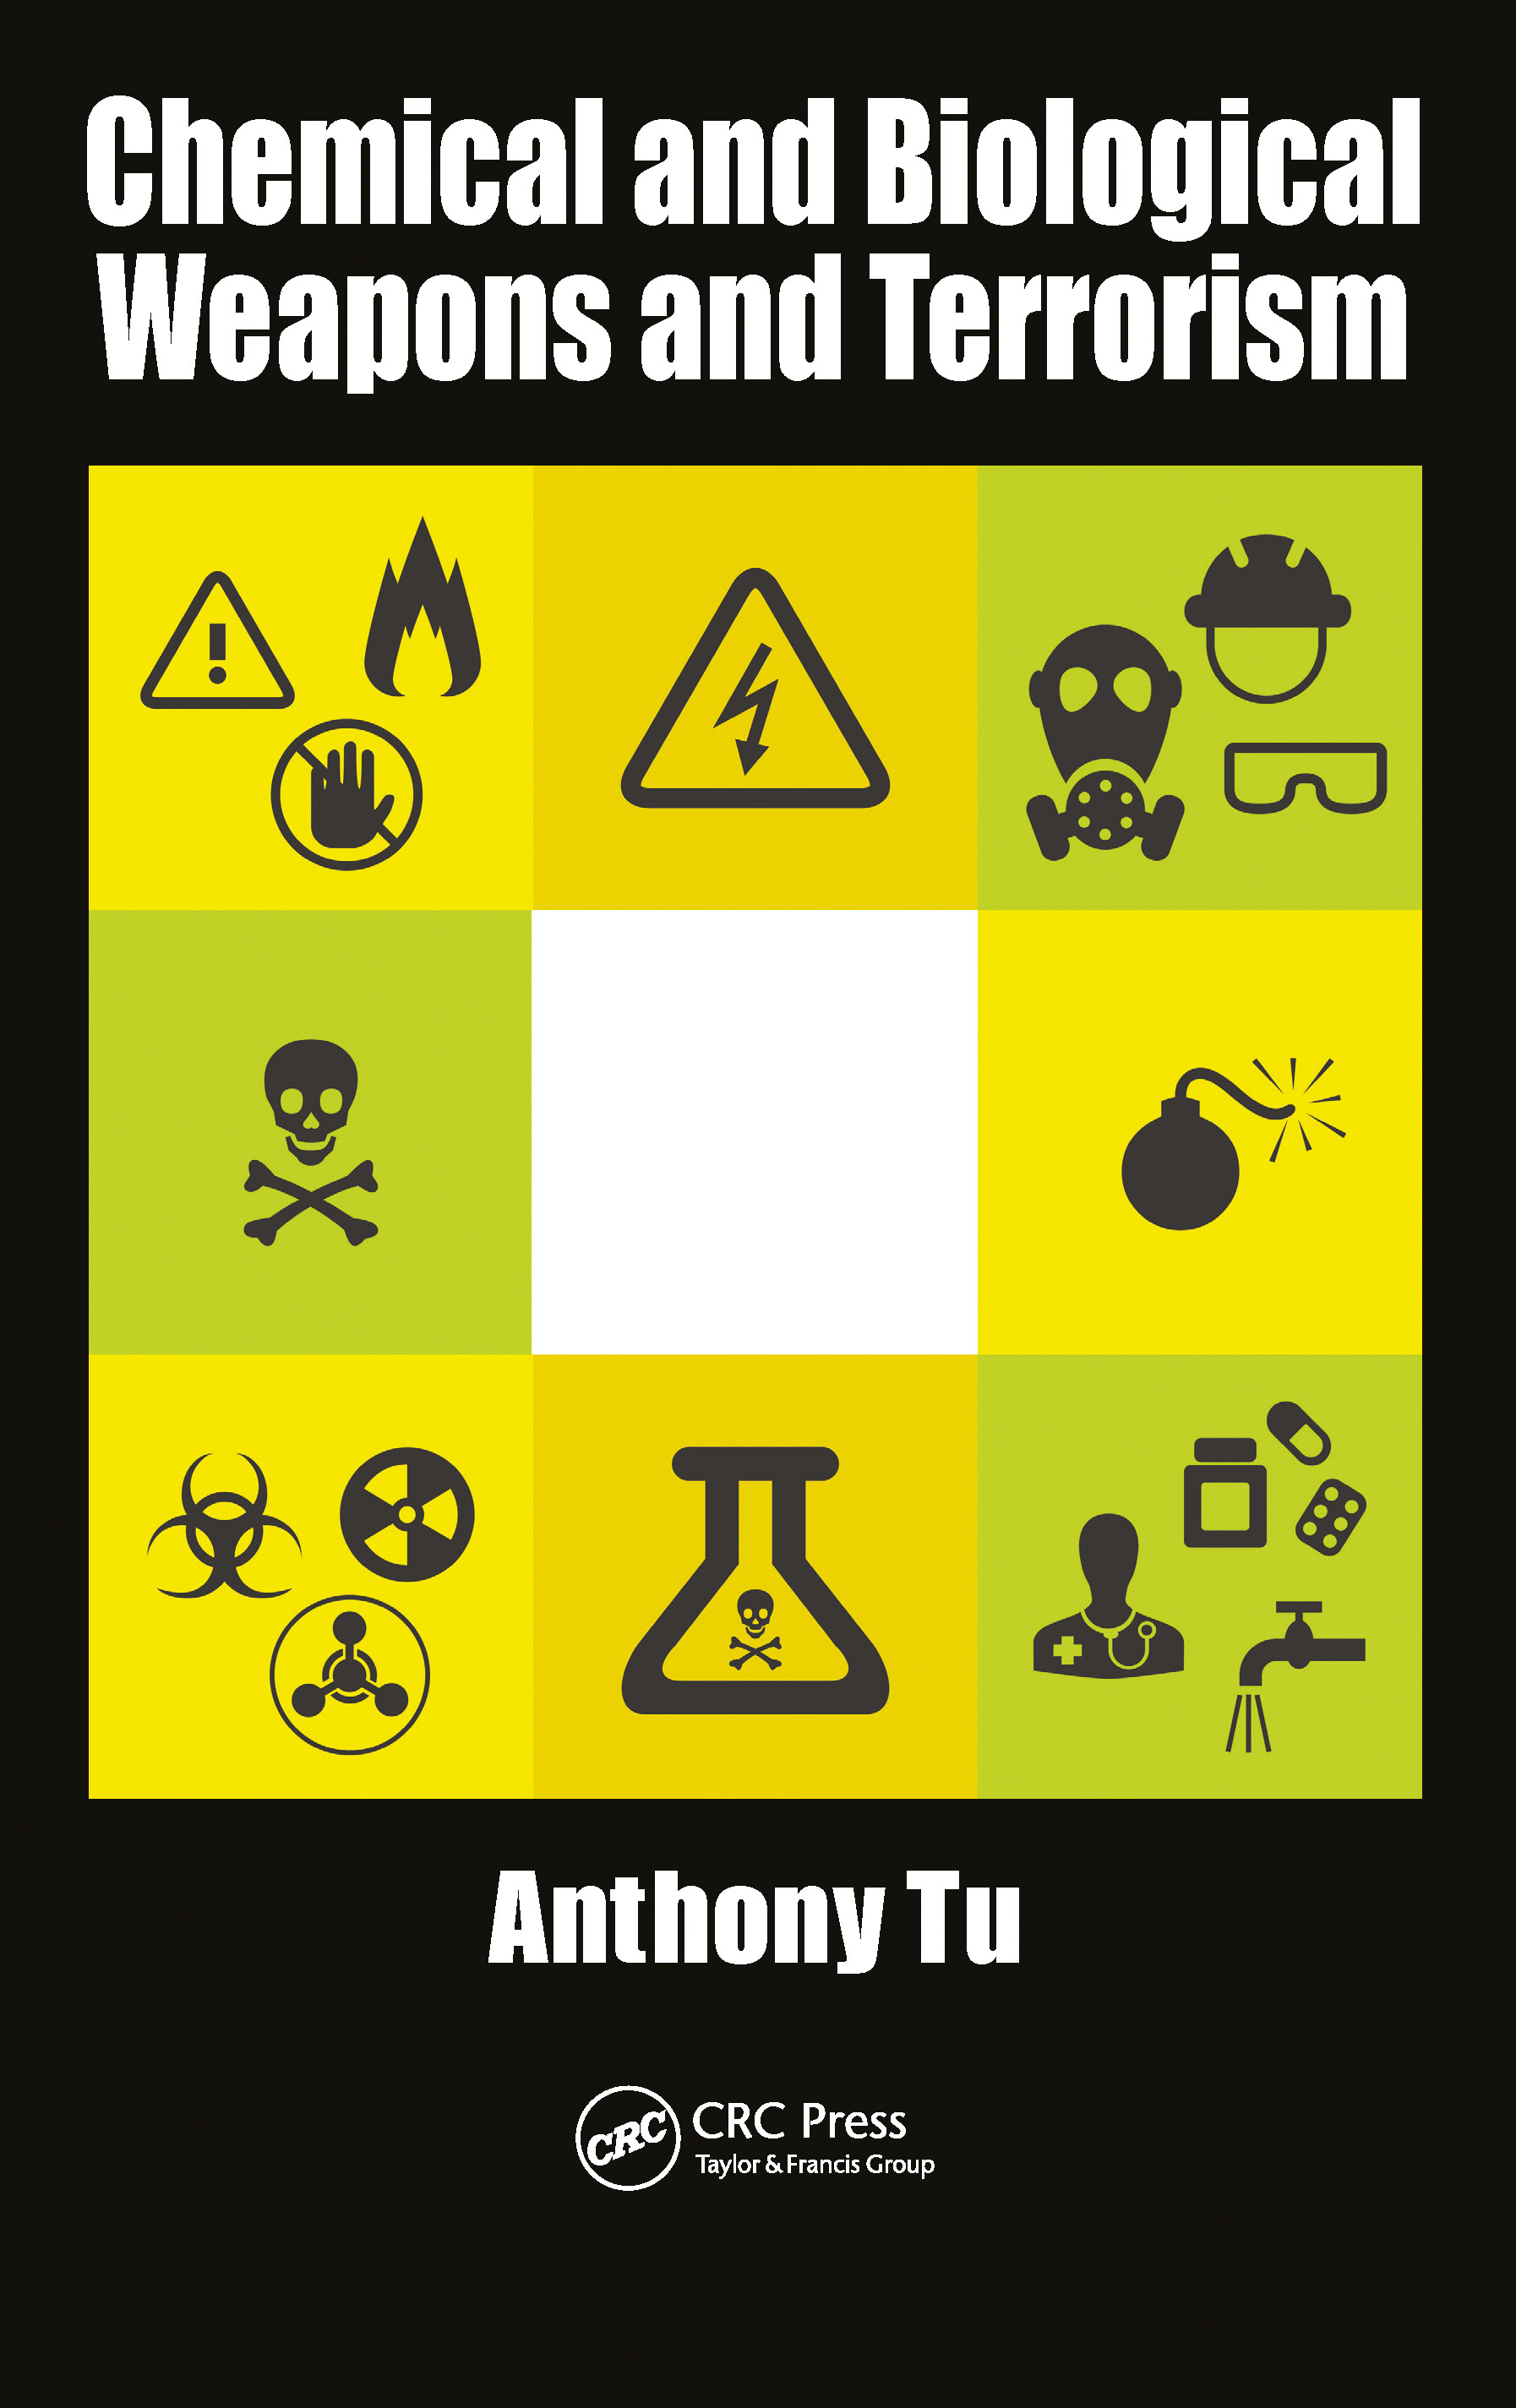 Chemical and Biological Weapons and Terrorism